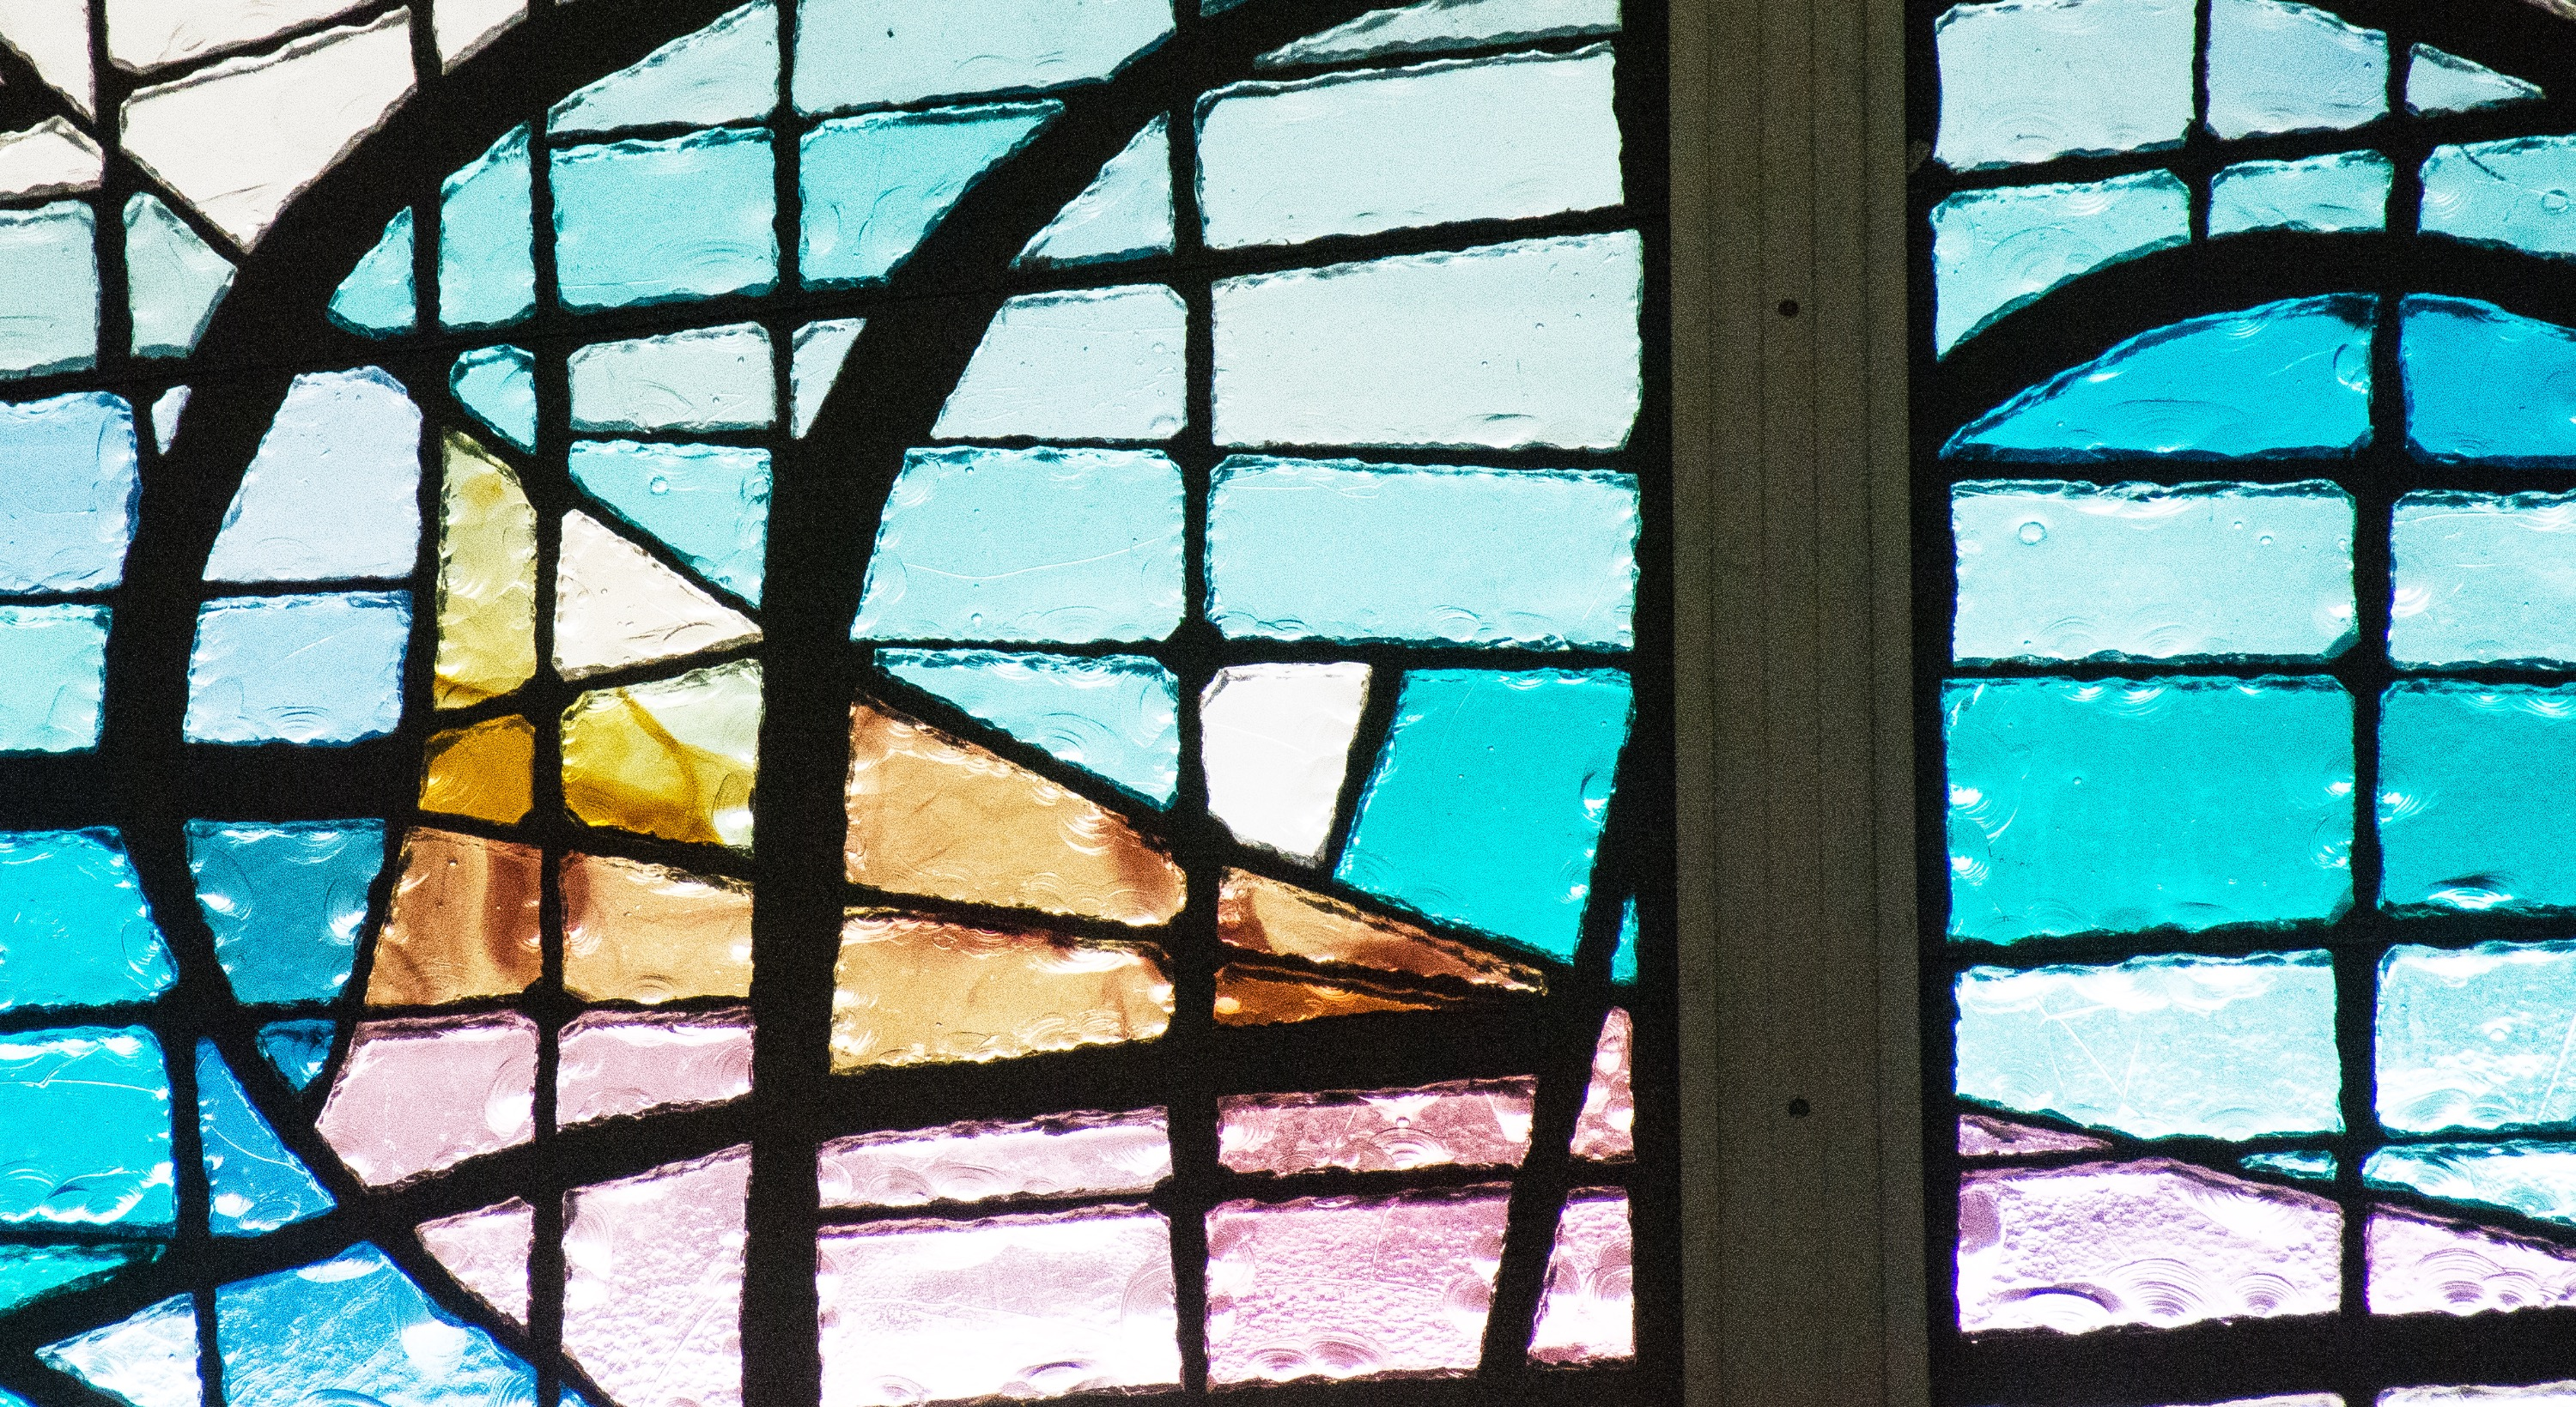 upclosestainedglass0080_edited